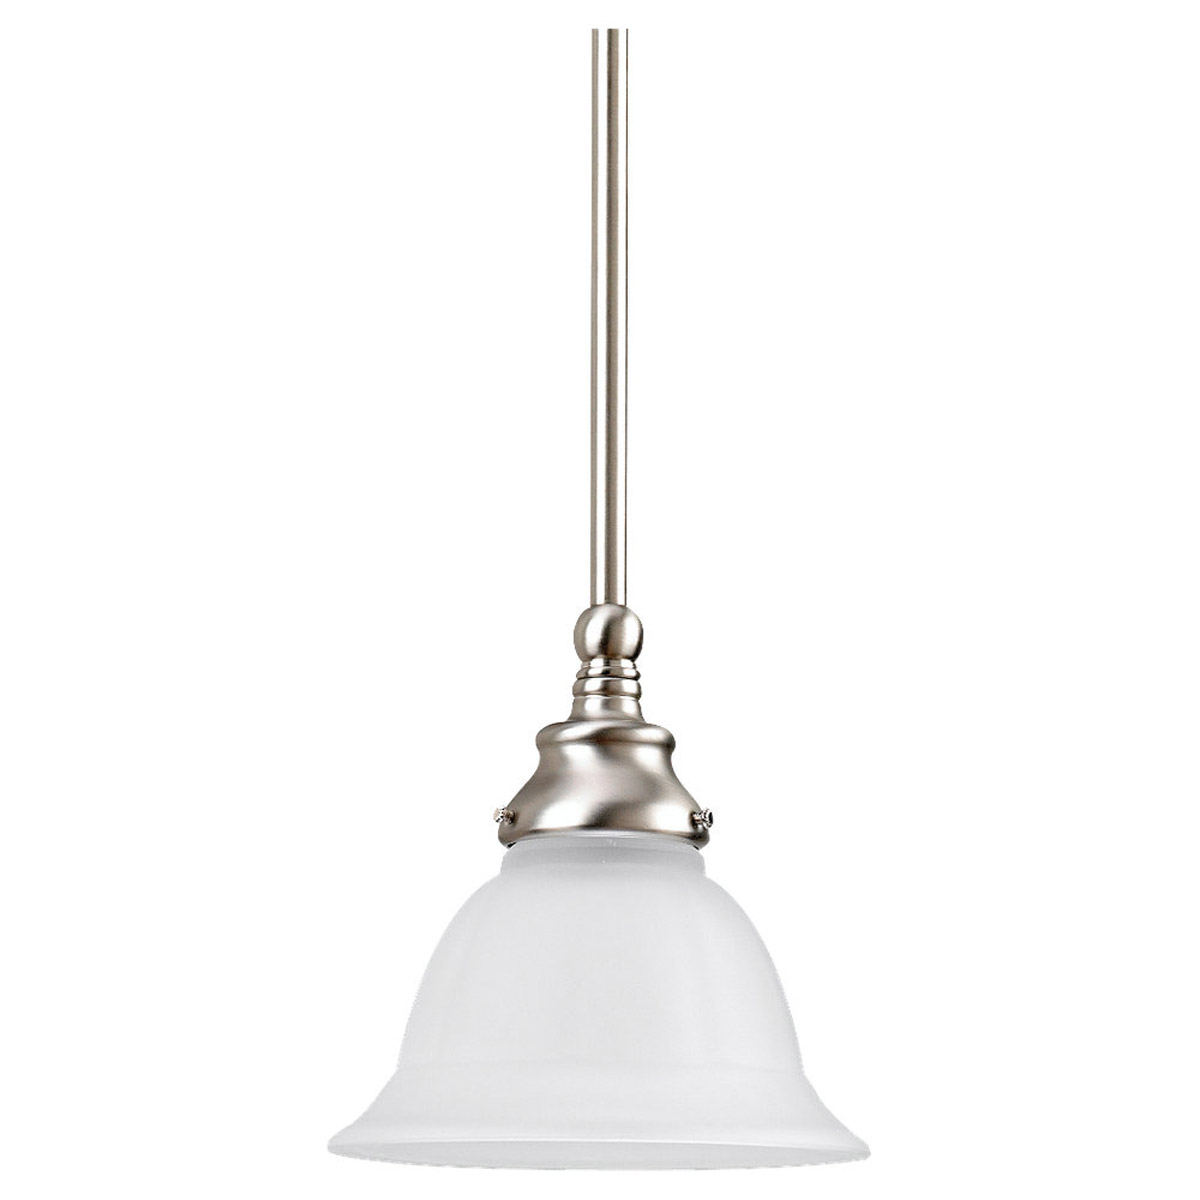 Sea Gull Lighting Canterbury 1 Light Pendant in Brushed Nickel 61050-962